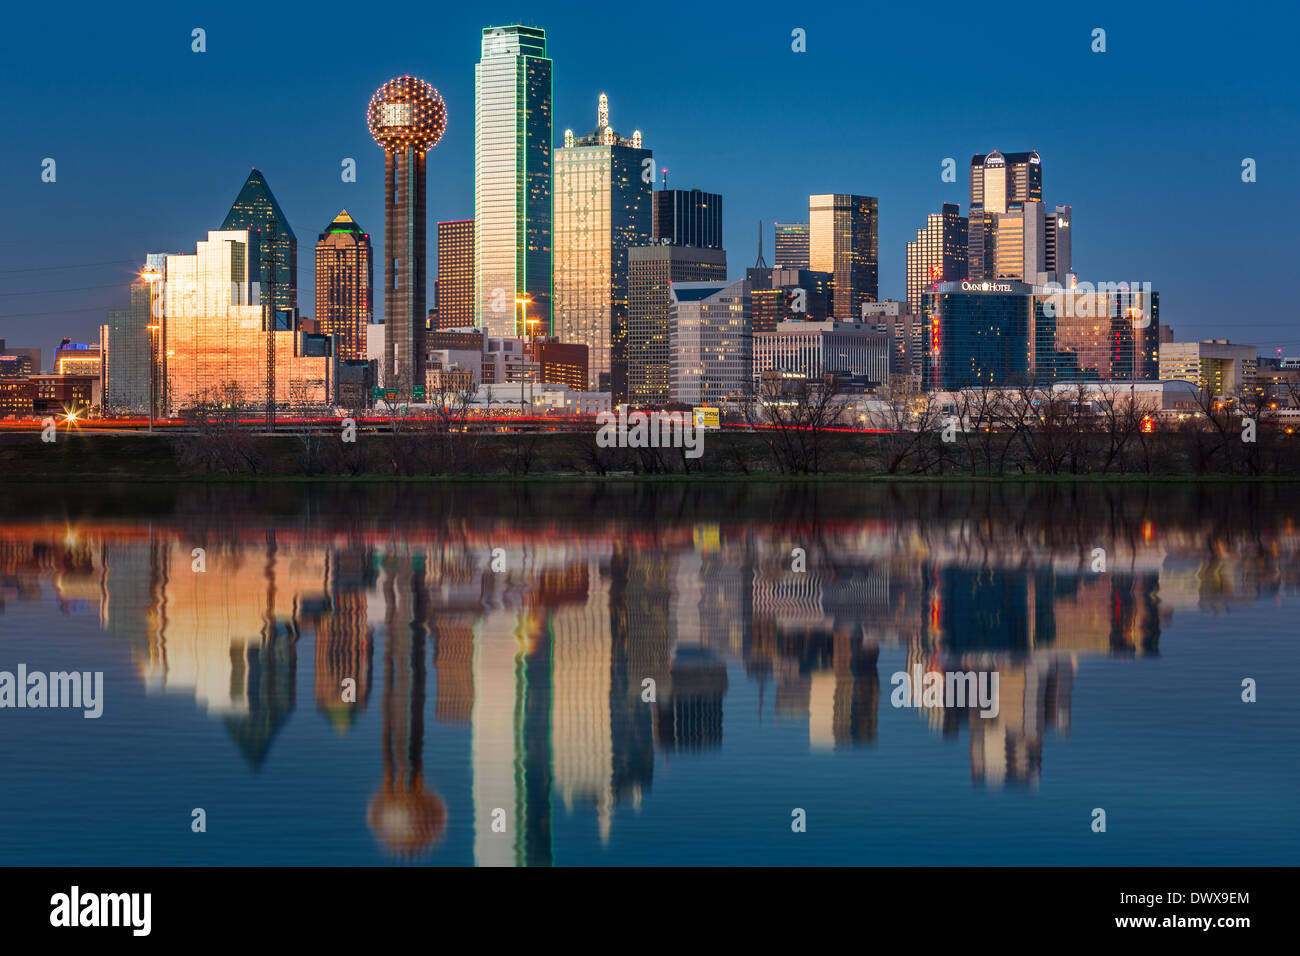 Dallas skyline reflected in Trinity River at sunset - Stock Image